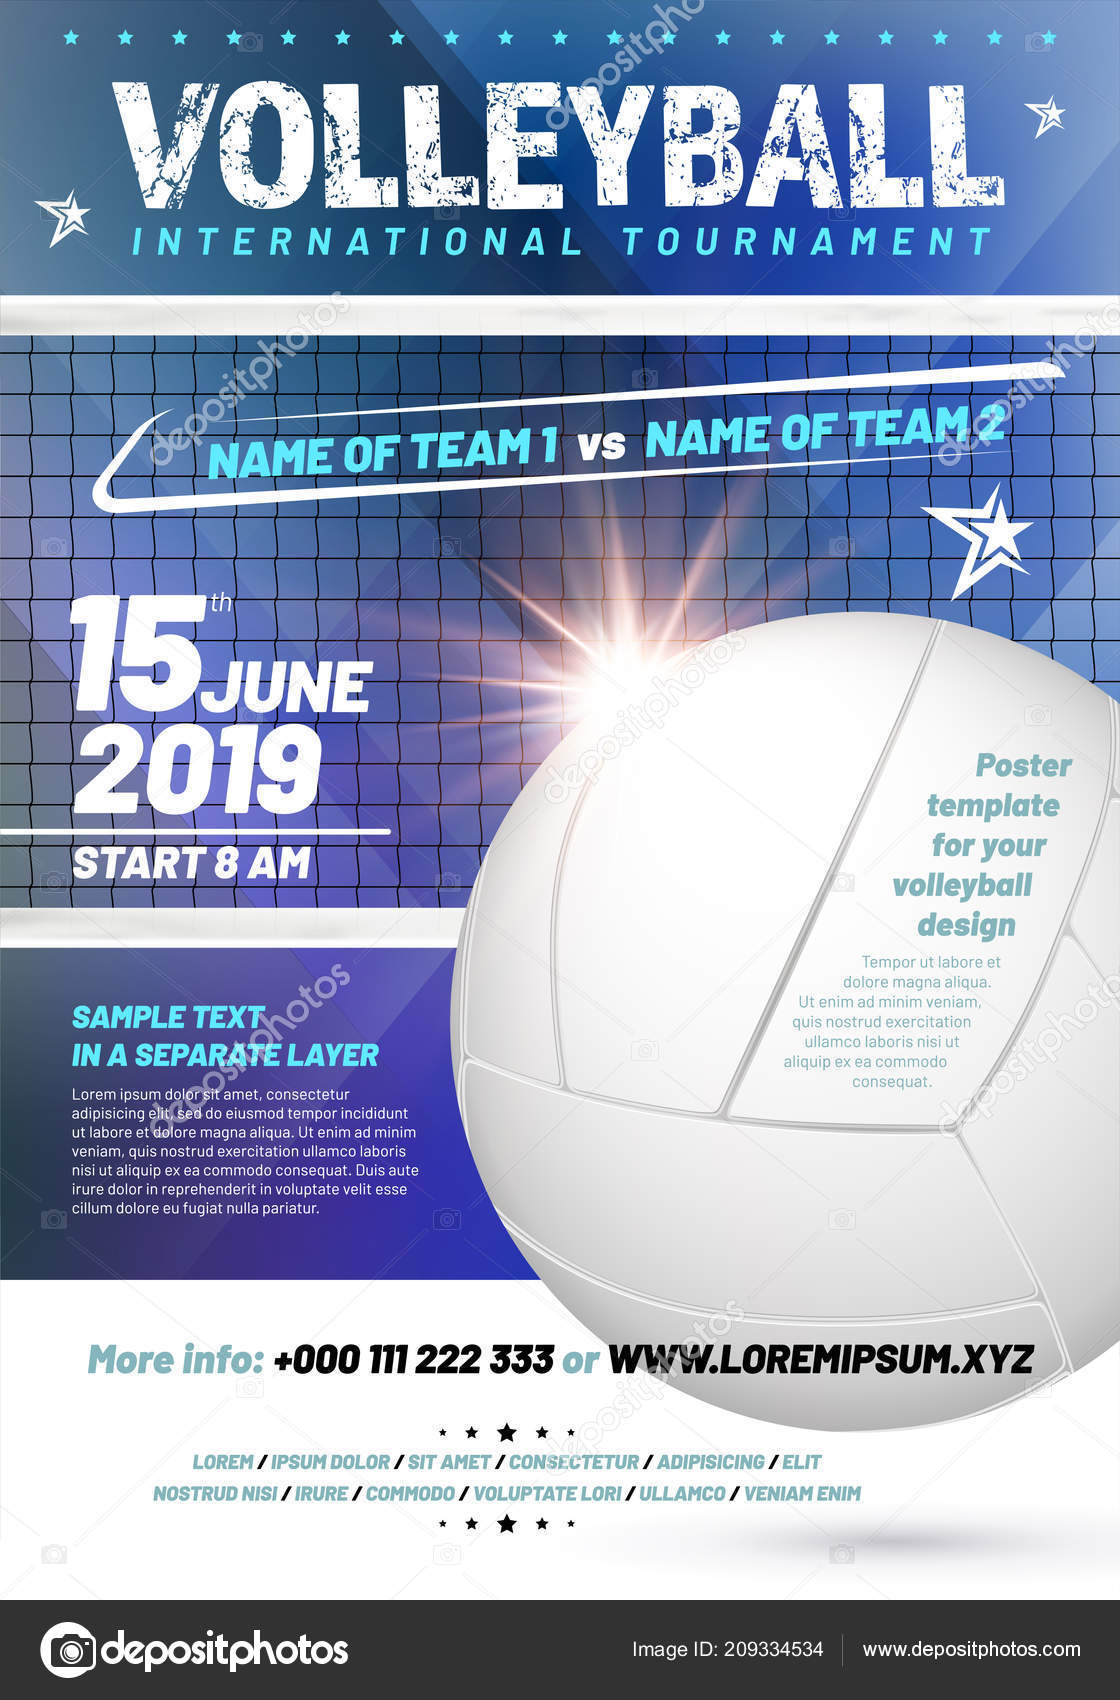 template your volleyball tournament poster design sample text